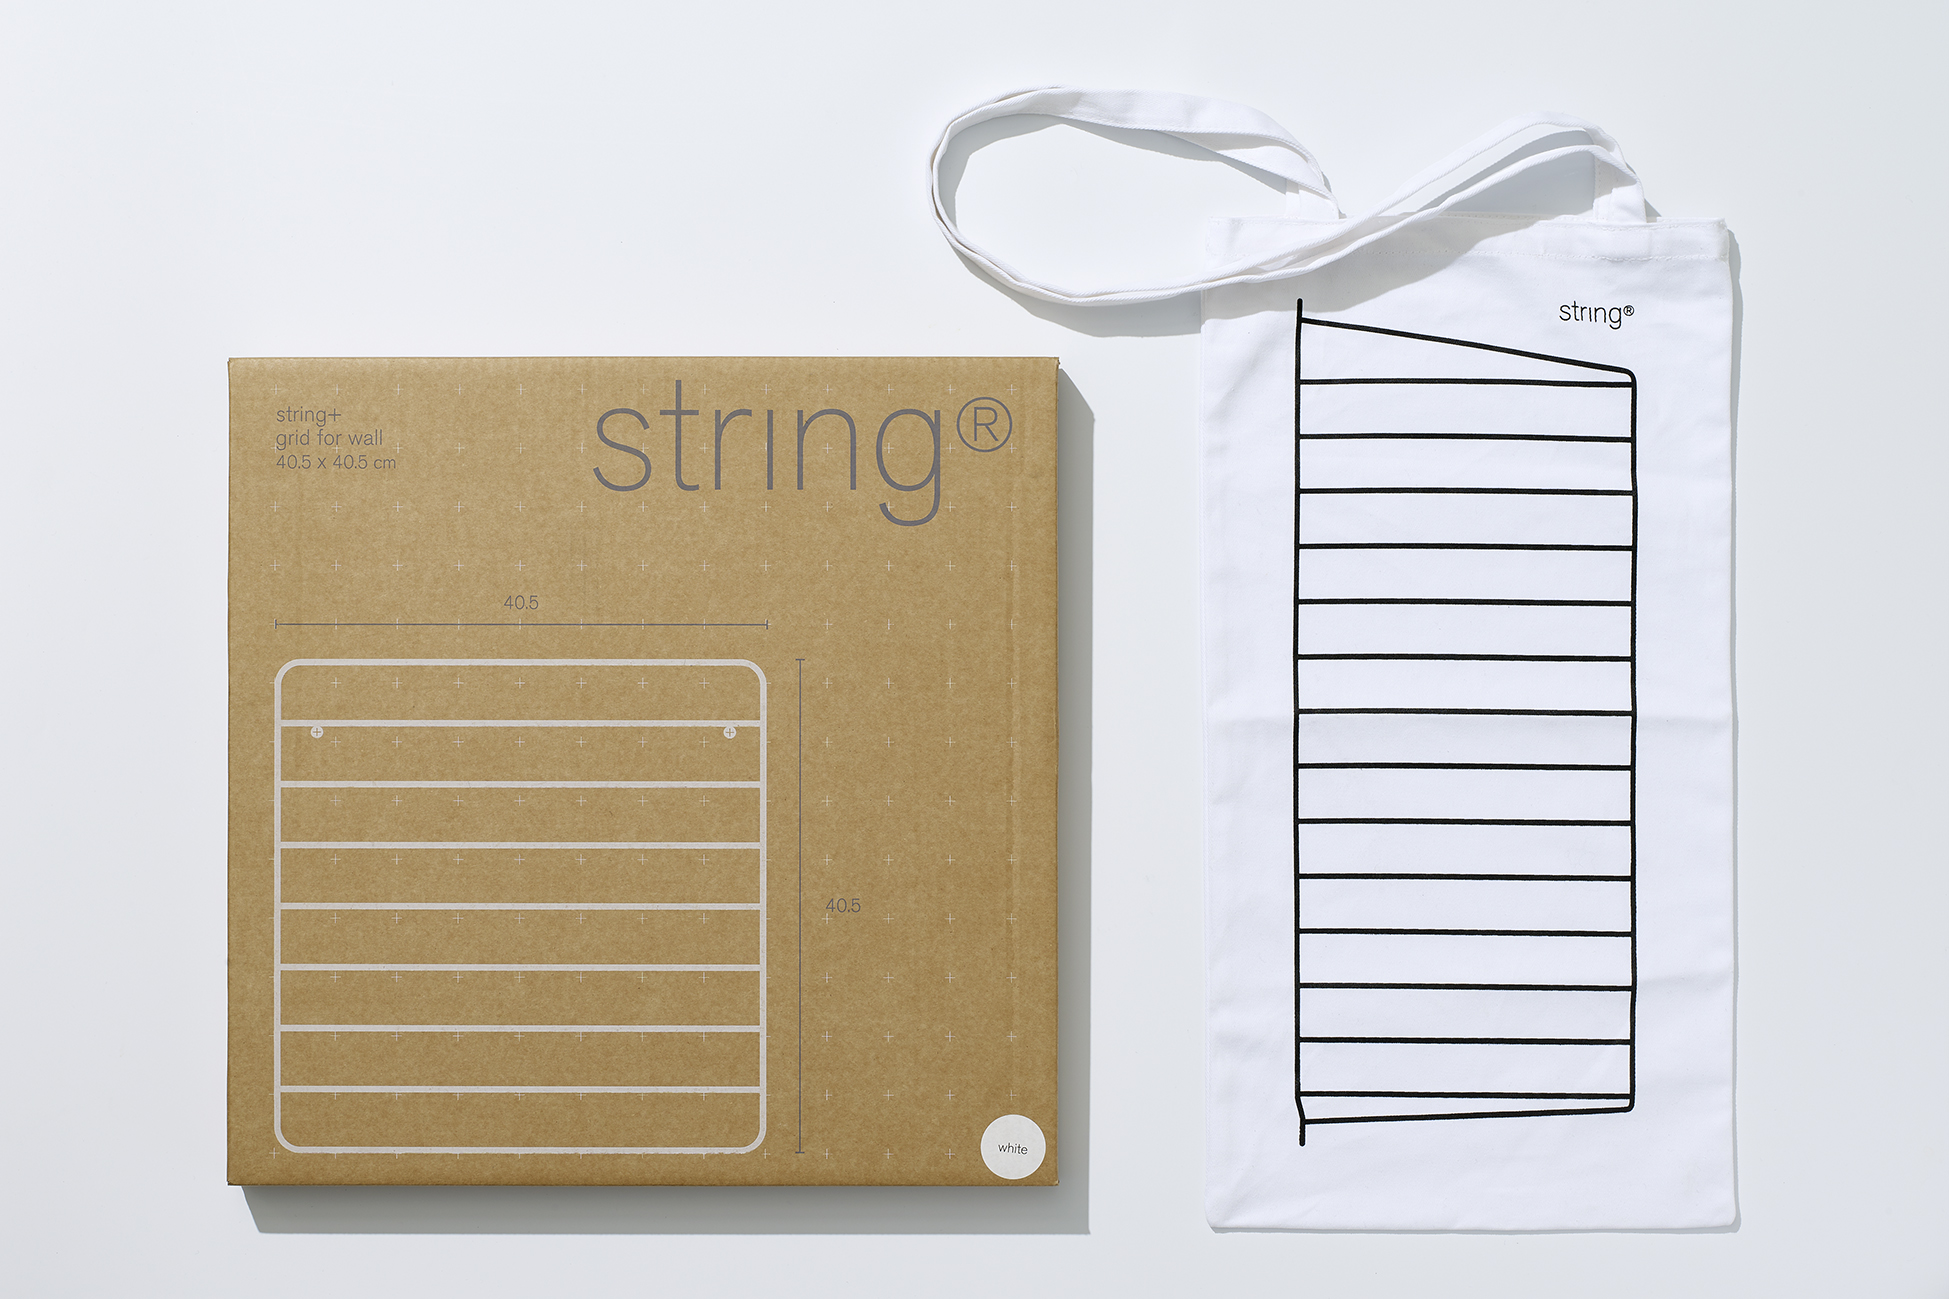 String packaging & tote bag